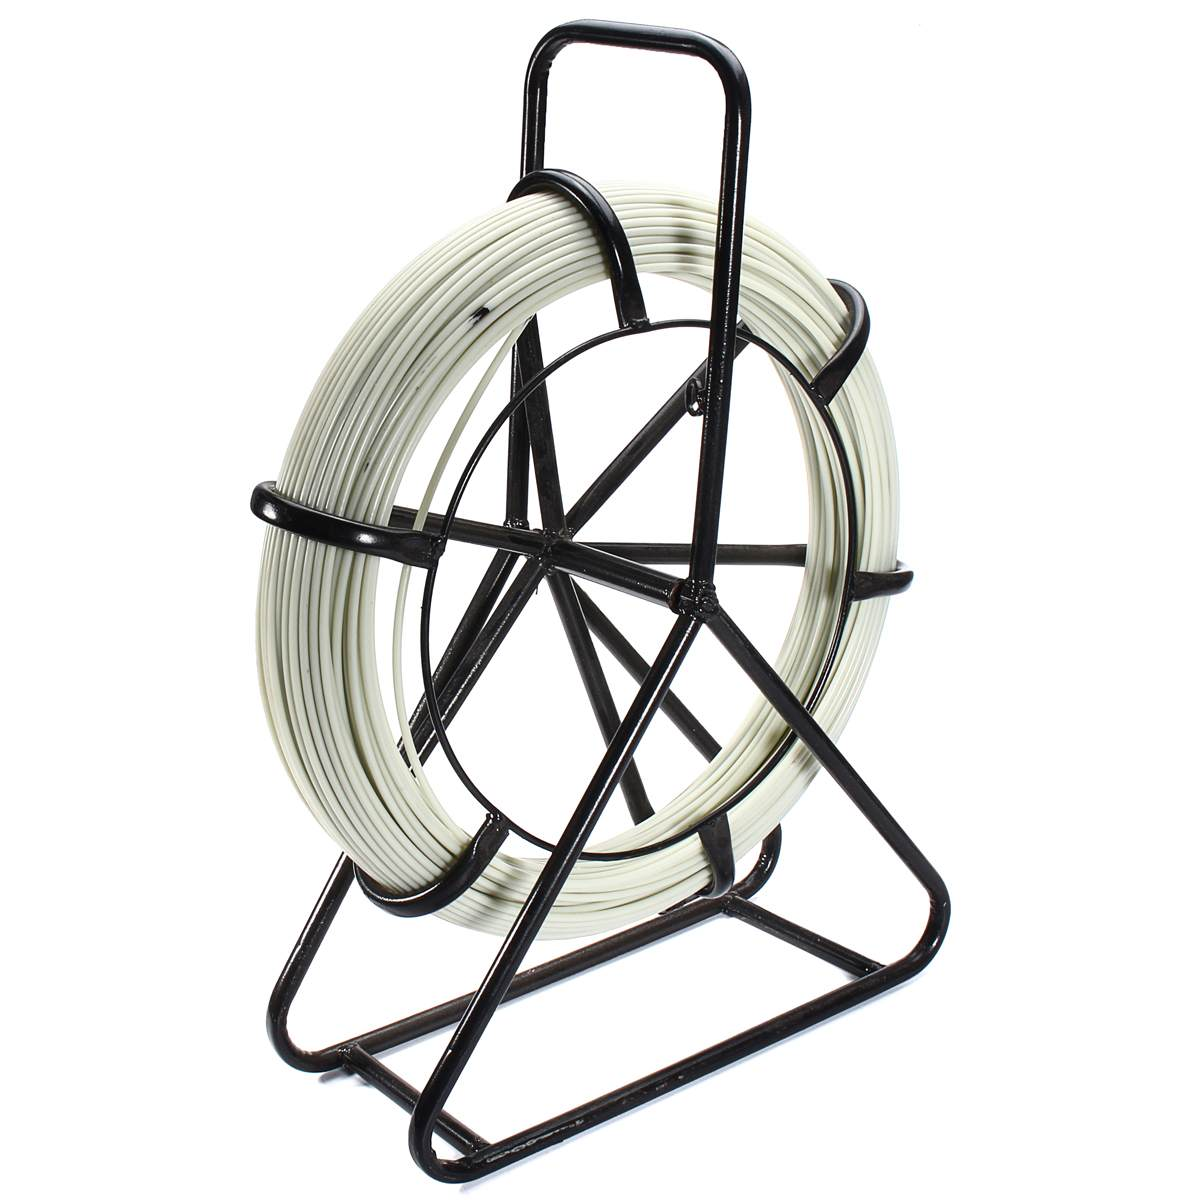 Fiberglass Fish Tape Wire Cable Running Duct Rodder Fishtape Puller Guide Leads Running Rod Wiring Accessories 4.5mm x 100mFiberglass Fish Tape Wire Cable Running Duct Rodder Fishtape Puller Guide Leads Running Rod Wiring Accessories 4.5mm x 100m